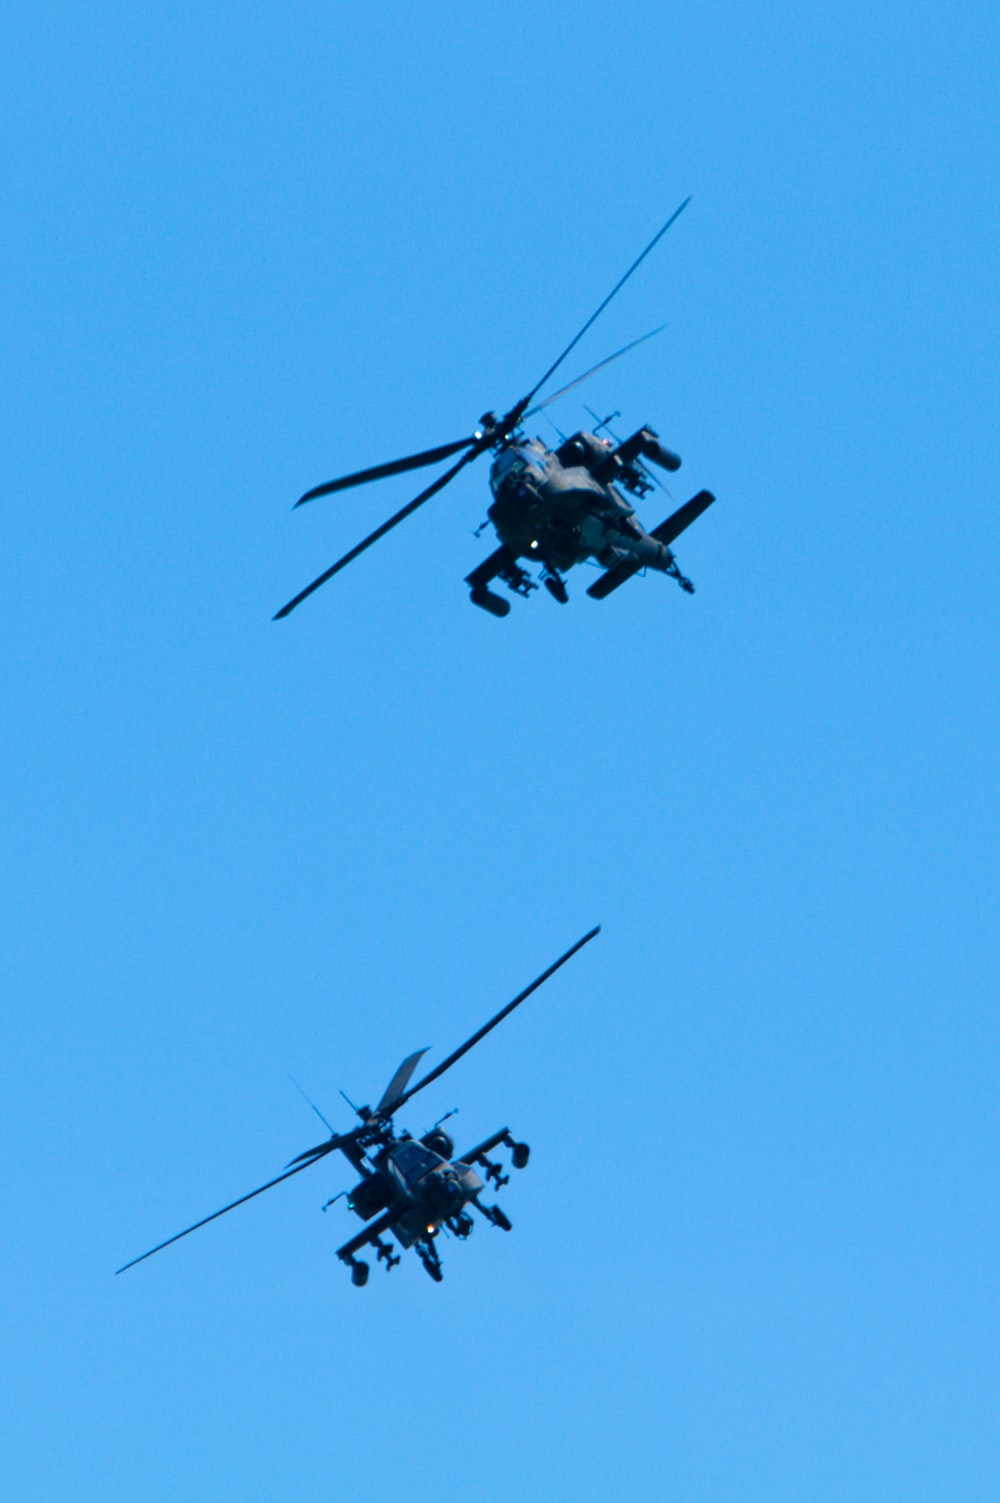 black and gray helicopter in mid air